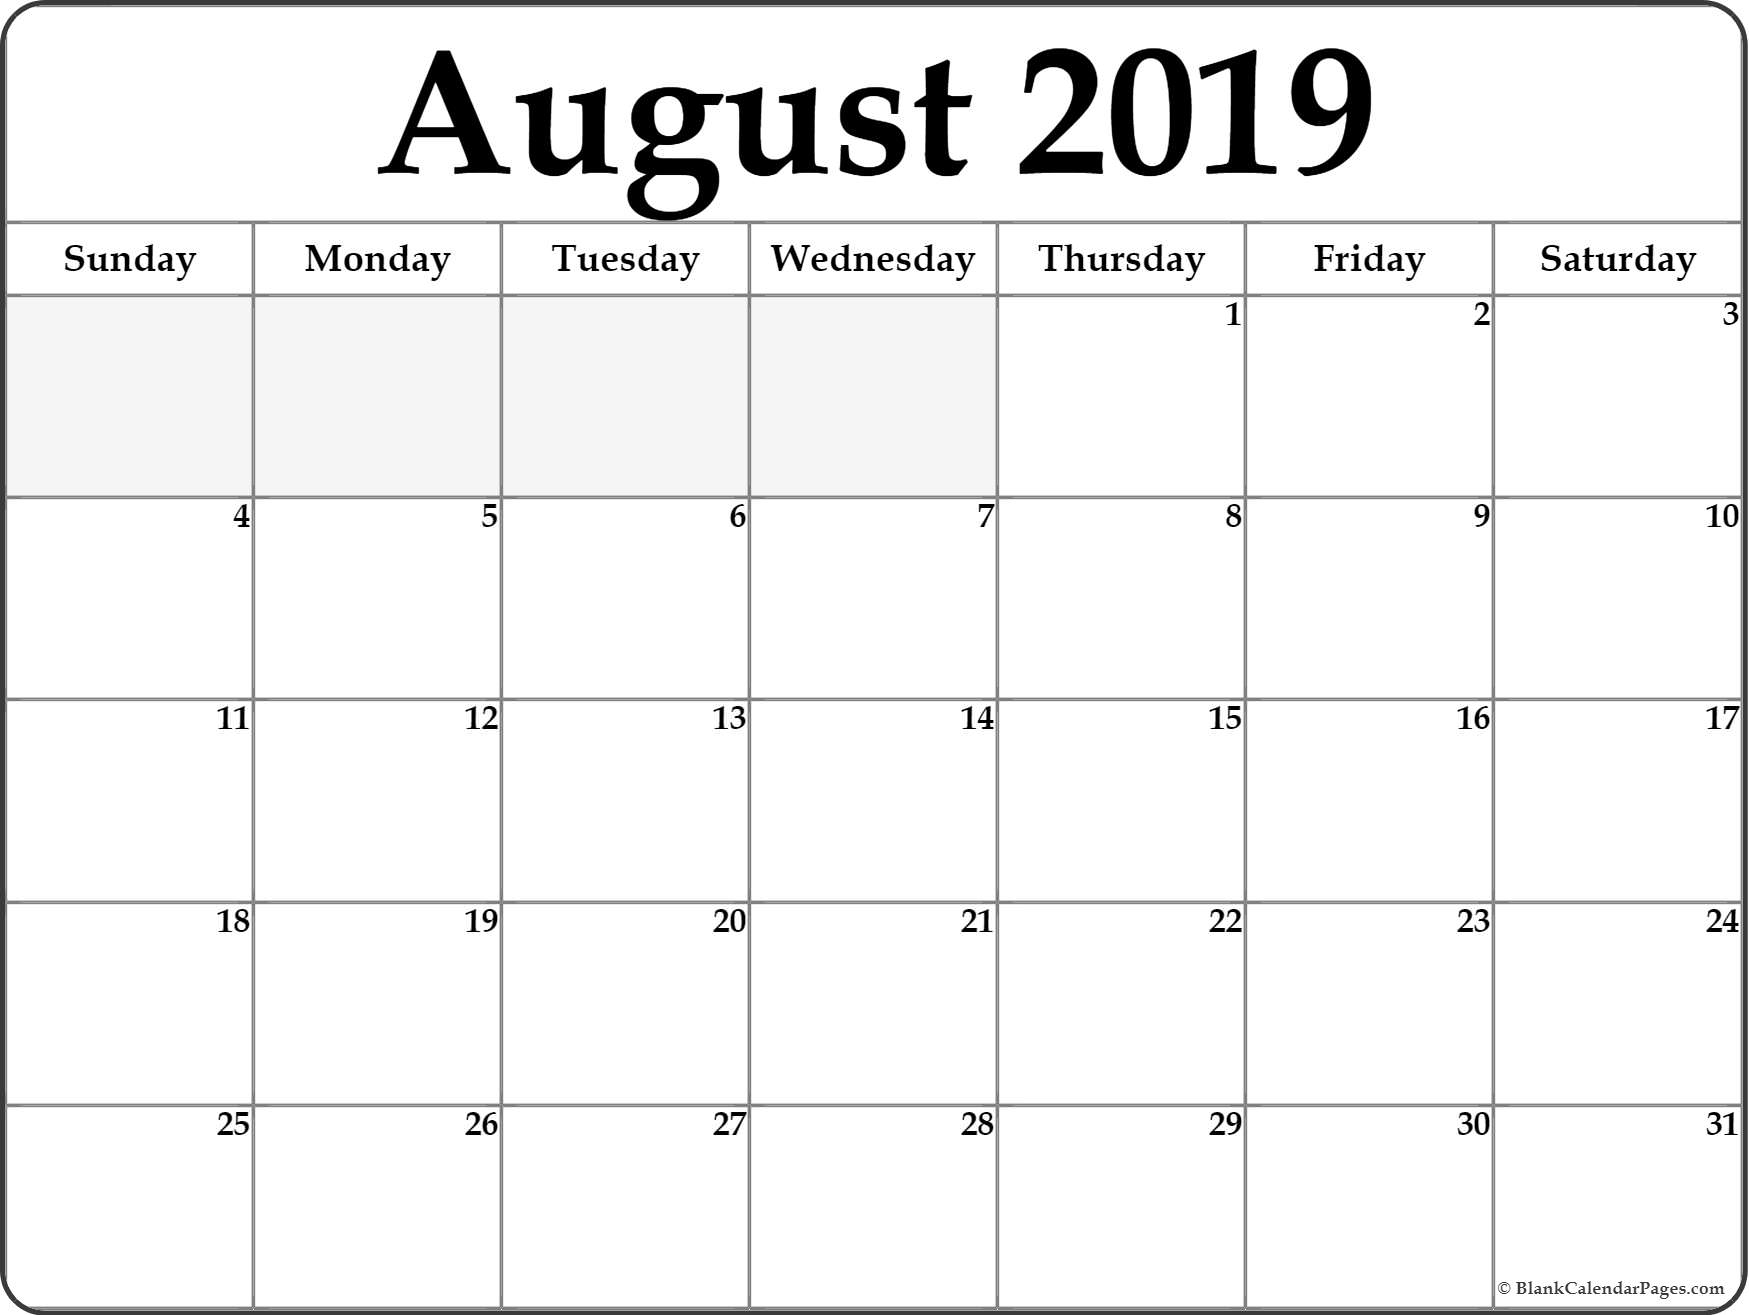 August 2019 Calendar | Free Printable Monthly Calendars inside Blank Calender Of August